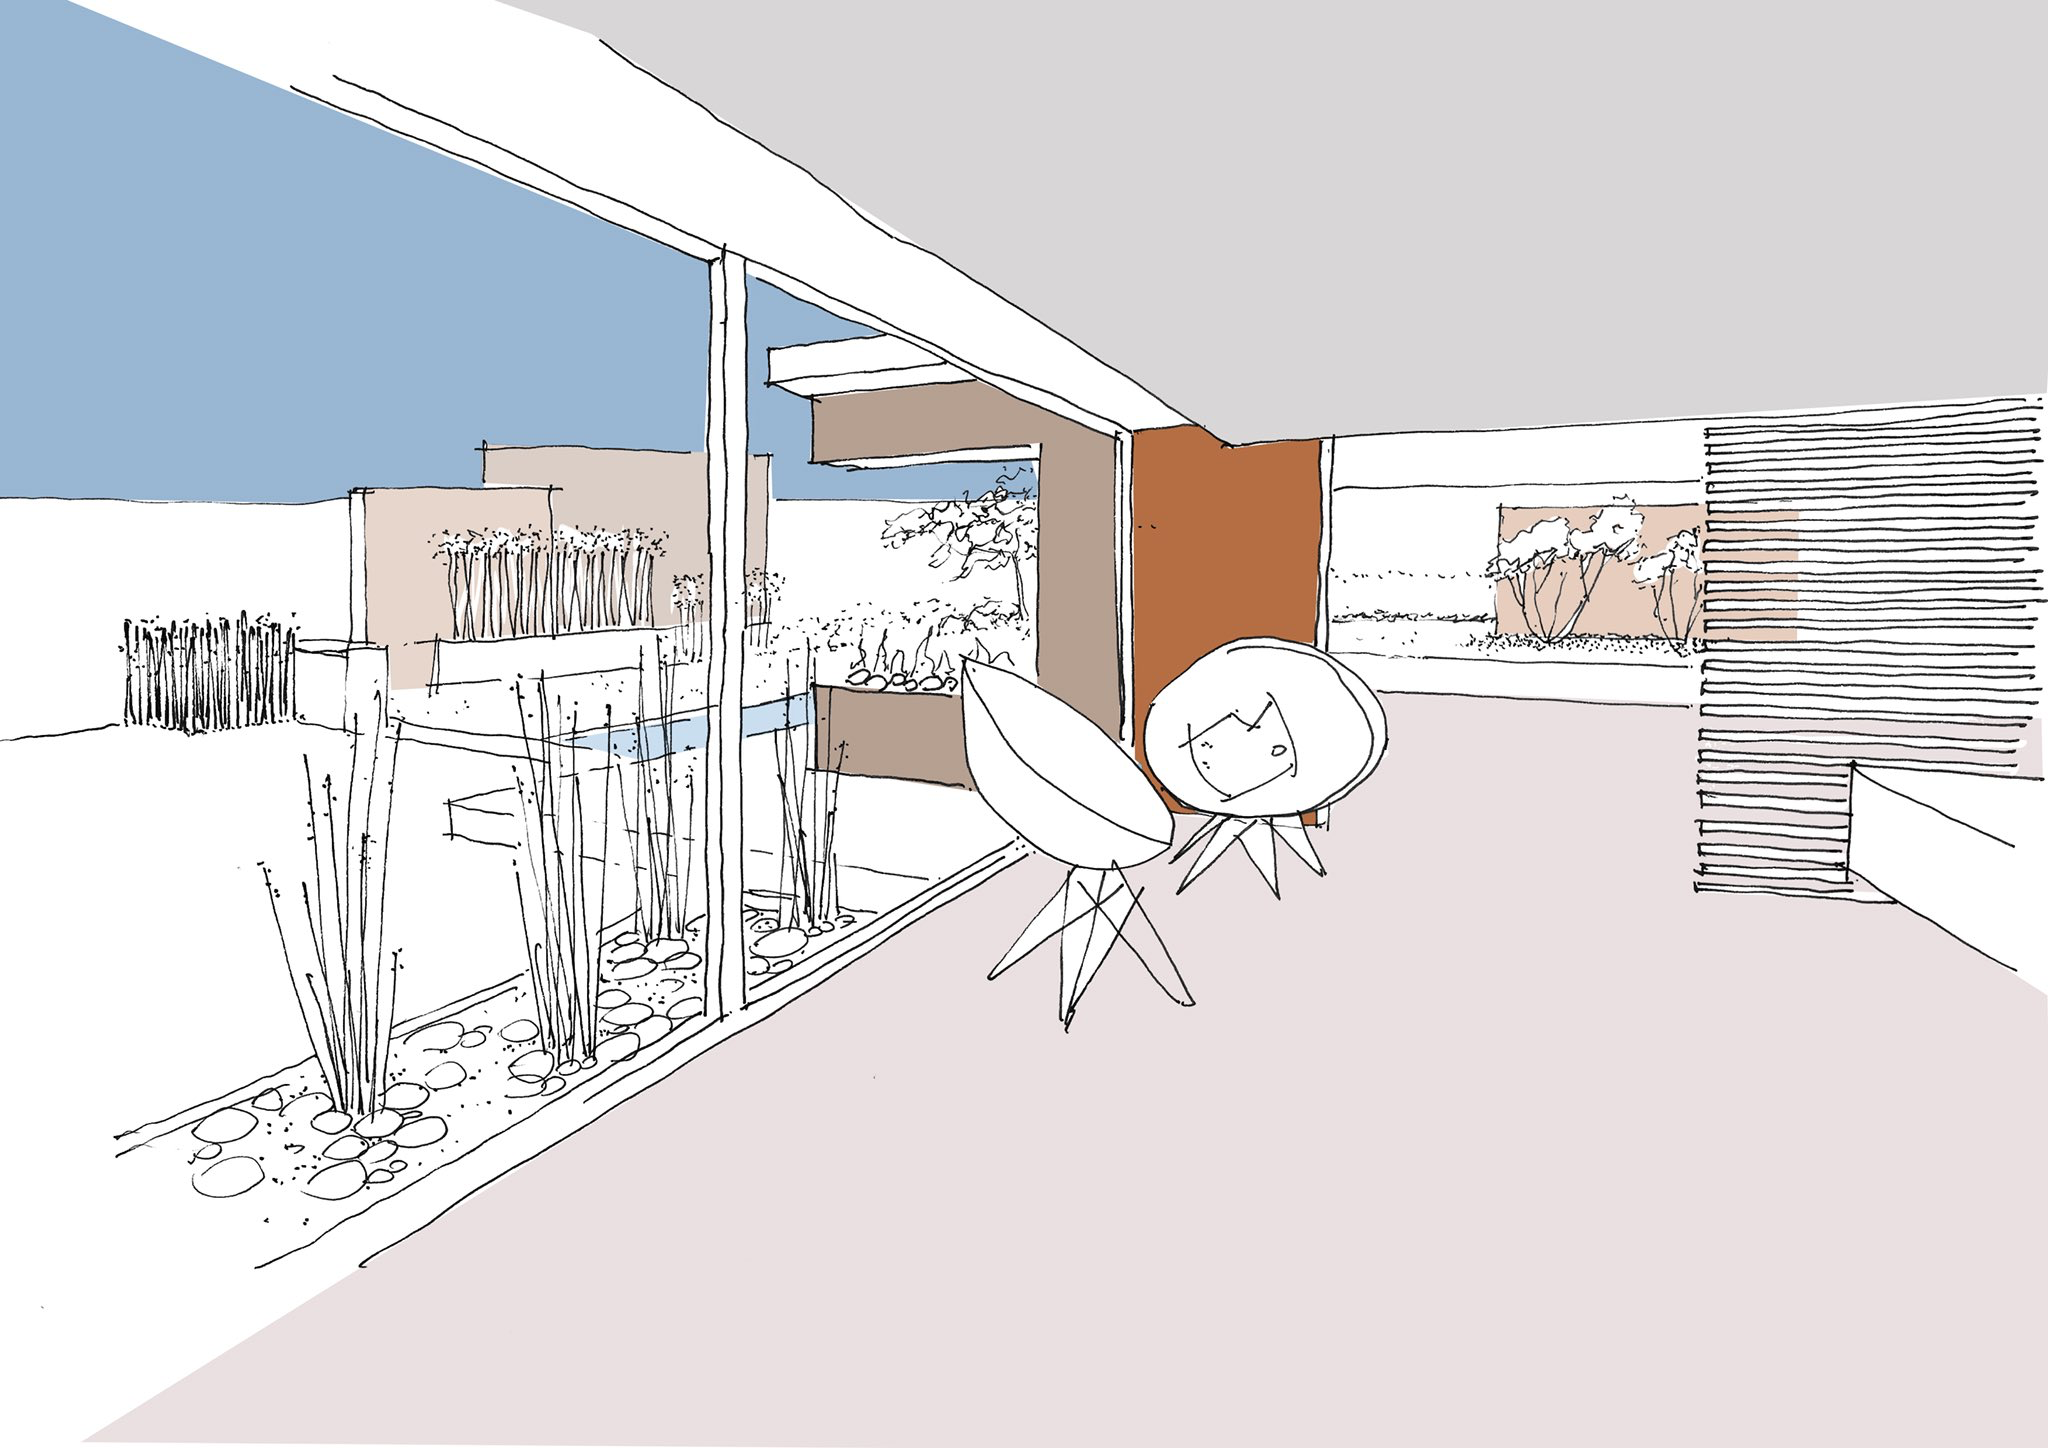 Sketch drawing of our latest contemporary sky frame architecture construction interiors project